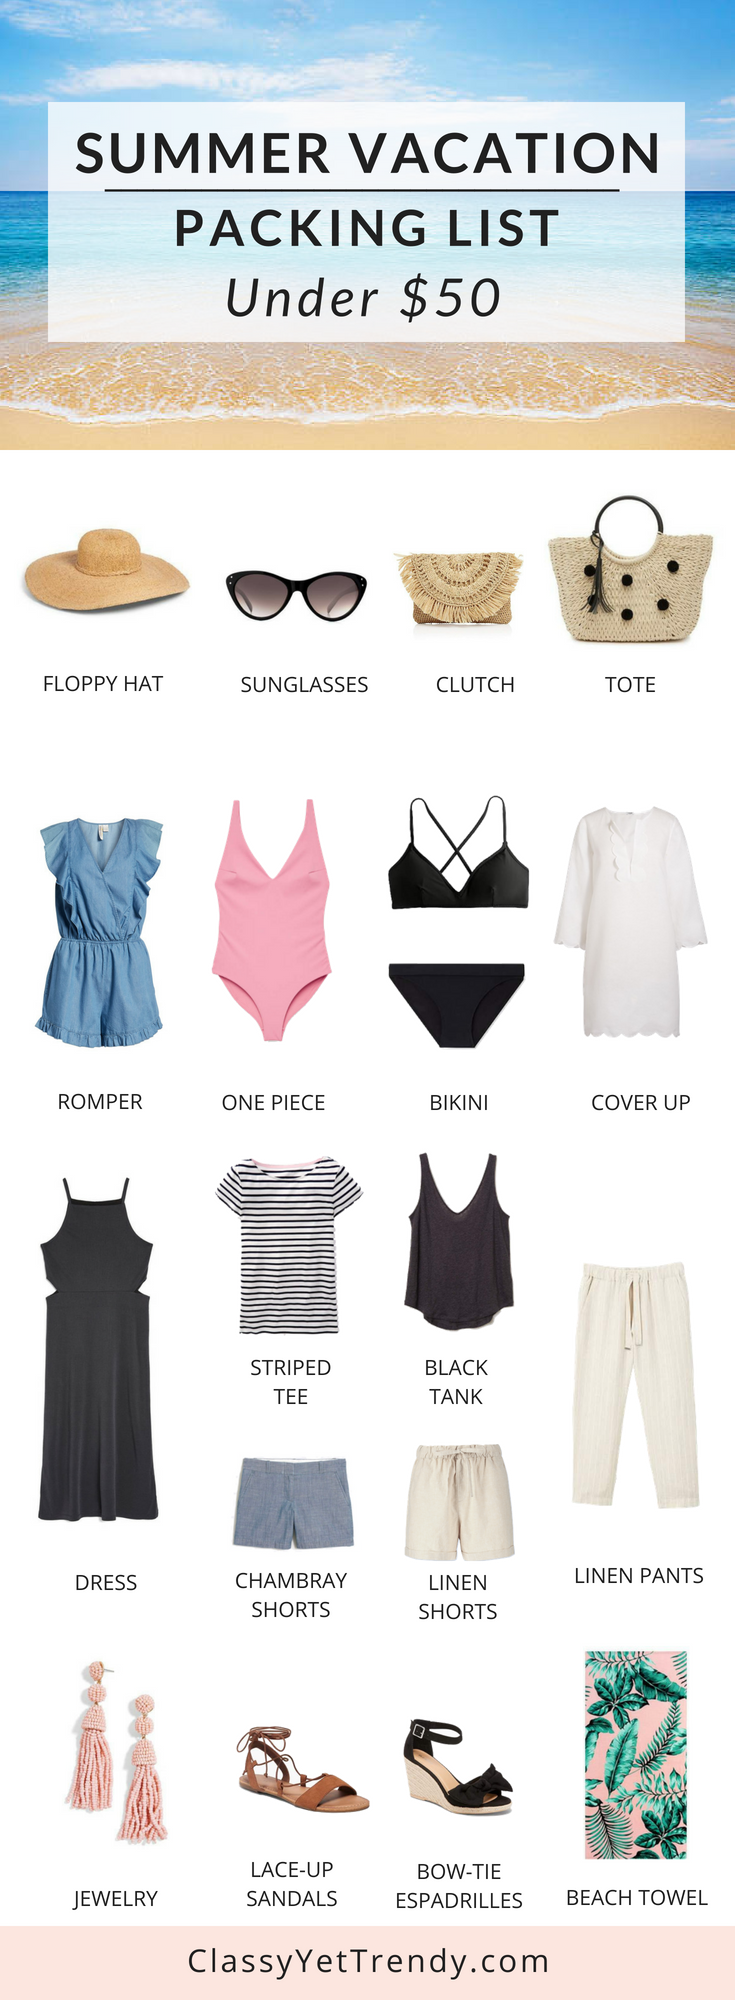 06e26958dc Summer Beach Vacation Packing List Under $50 - Classy Yet Trendy